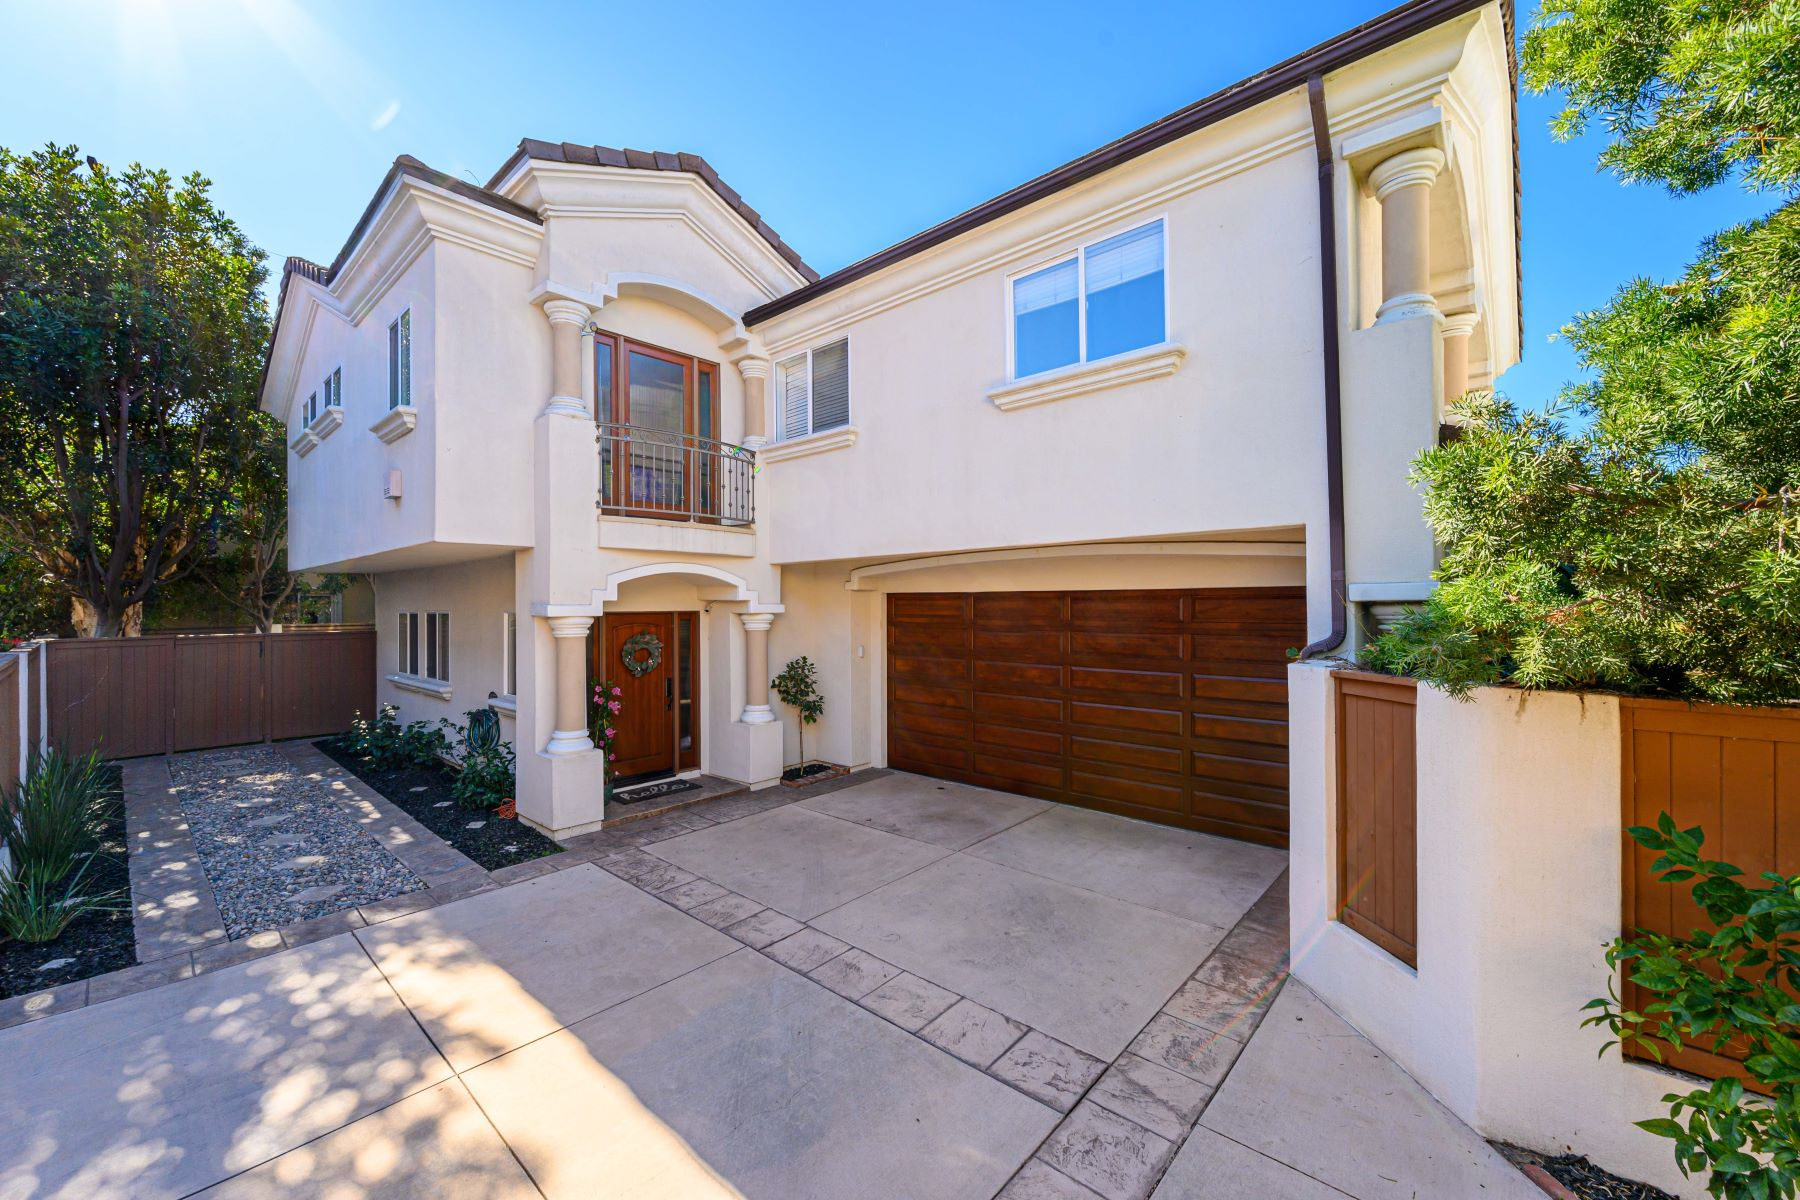 townhouses for Sale at 2402 Graham Avenue #B, Redondo Beach, CA 90278 2402 Graham Avenue #B Redondo Beach, California 90278 United States